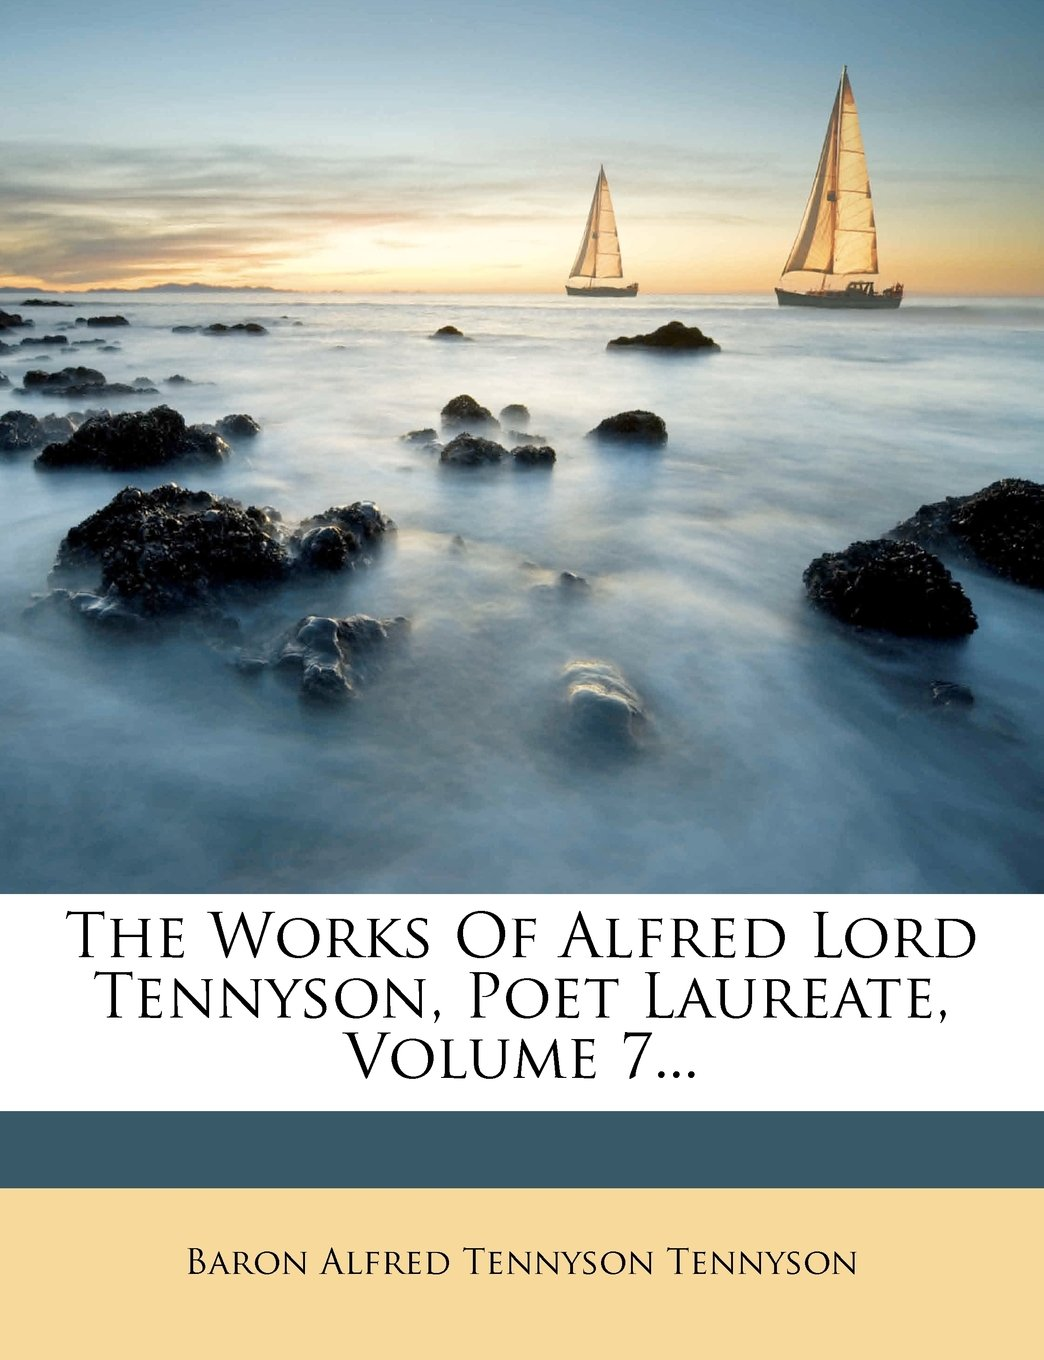 Download The Works Of Alfred Lord Tennyson, Poet Laureate, Volume 7... ebook